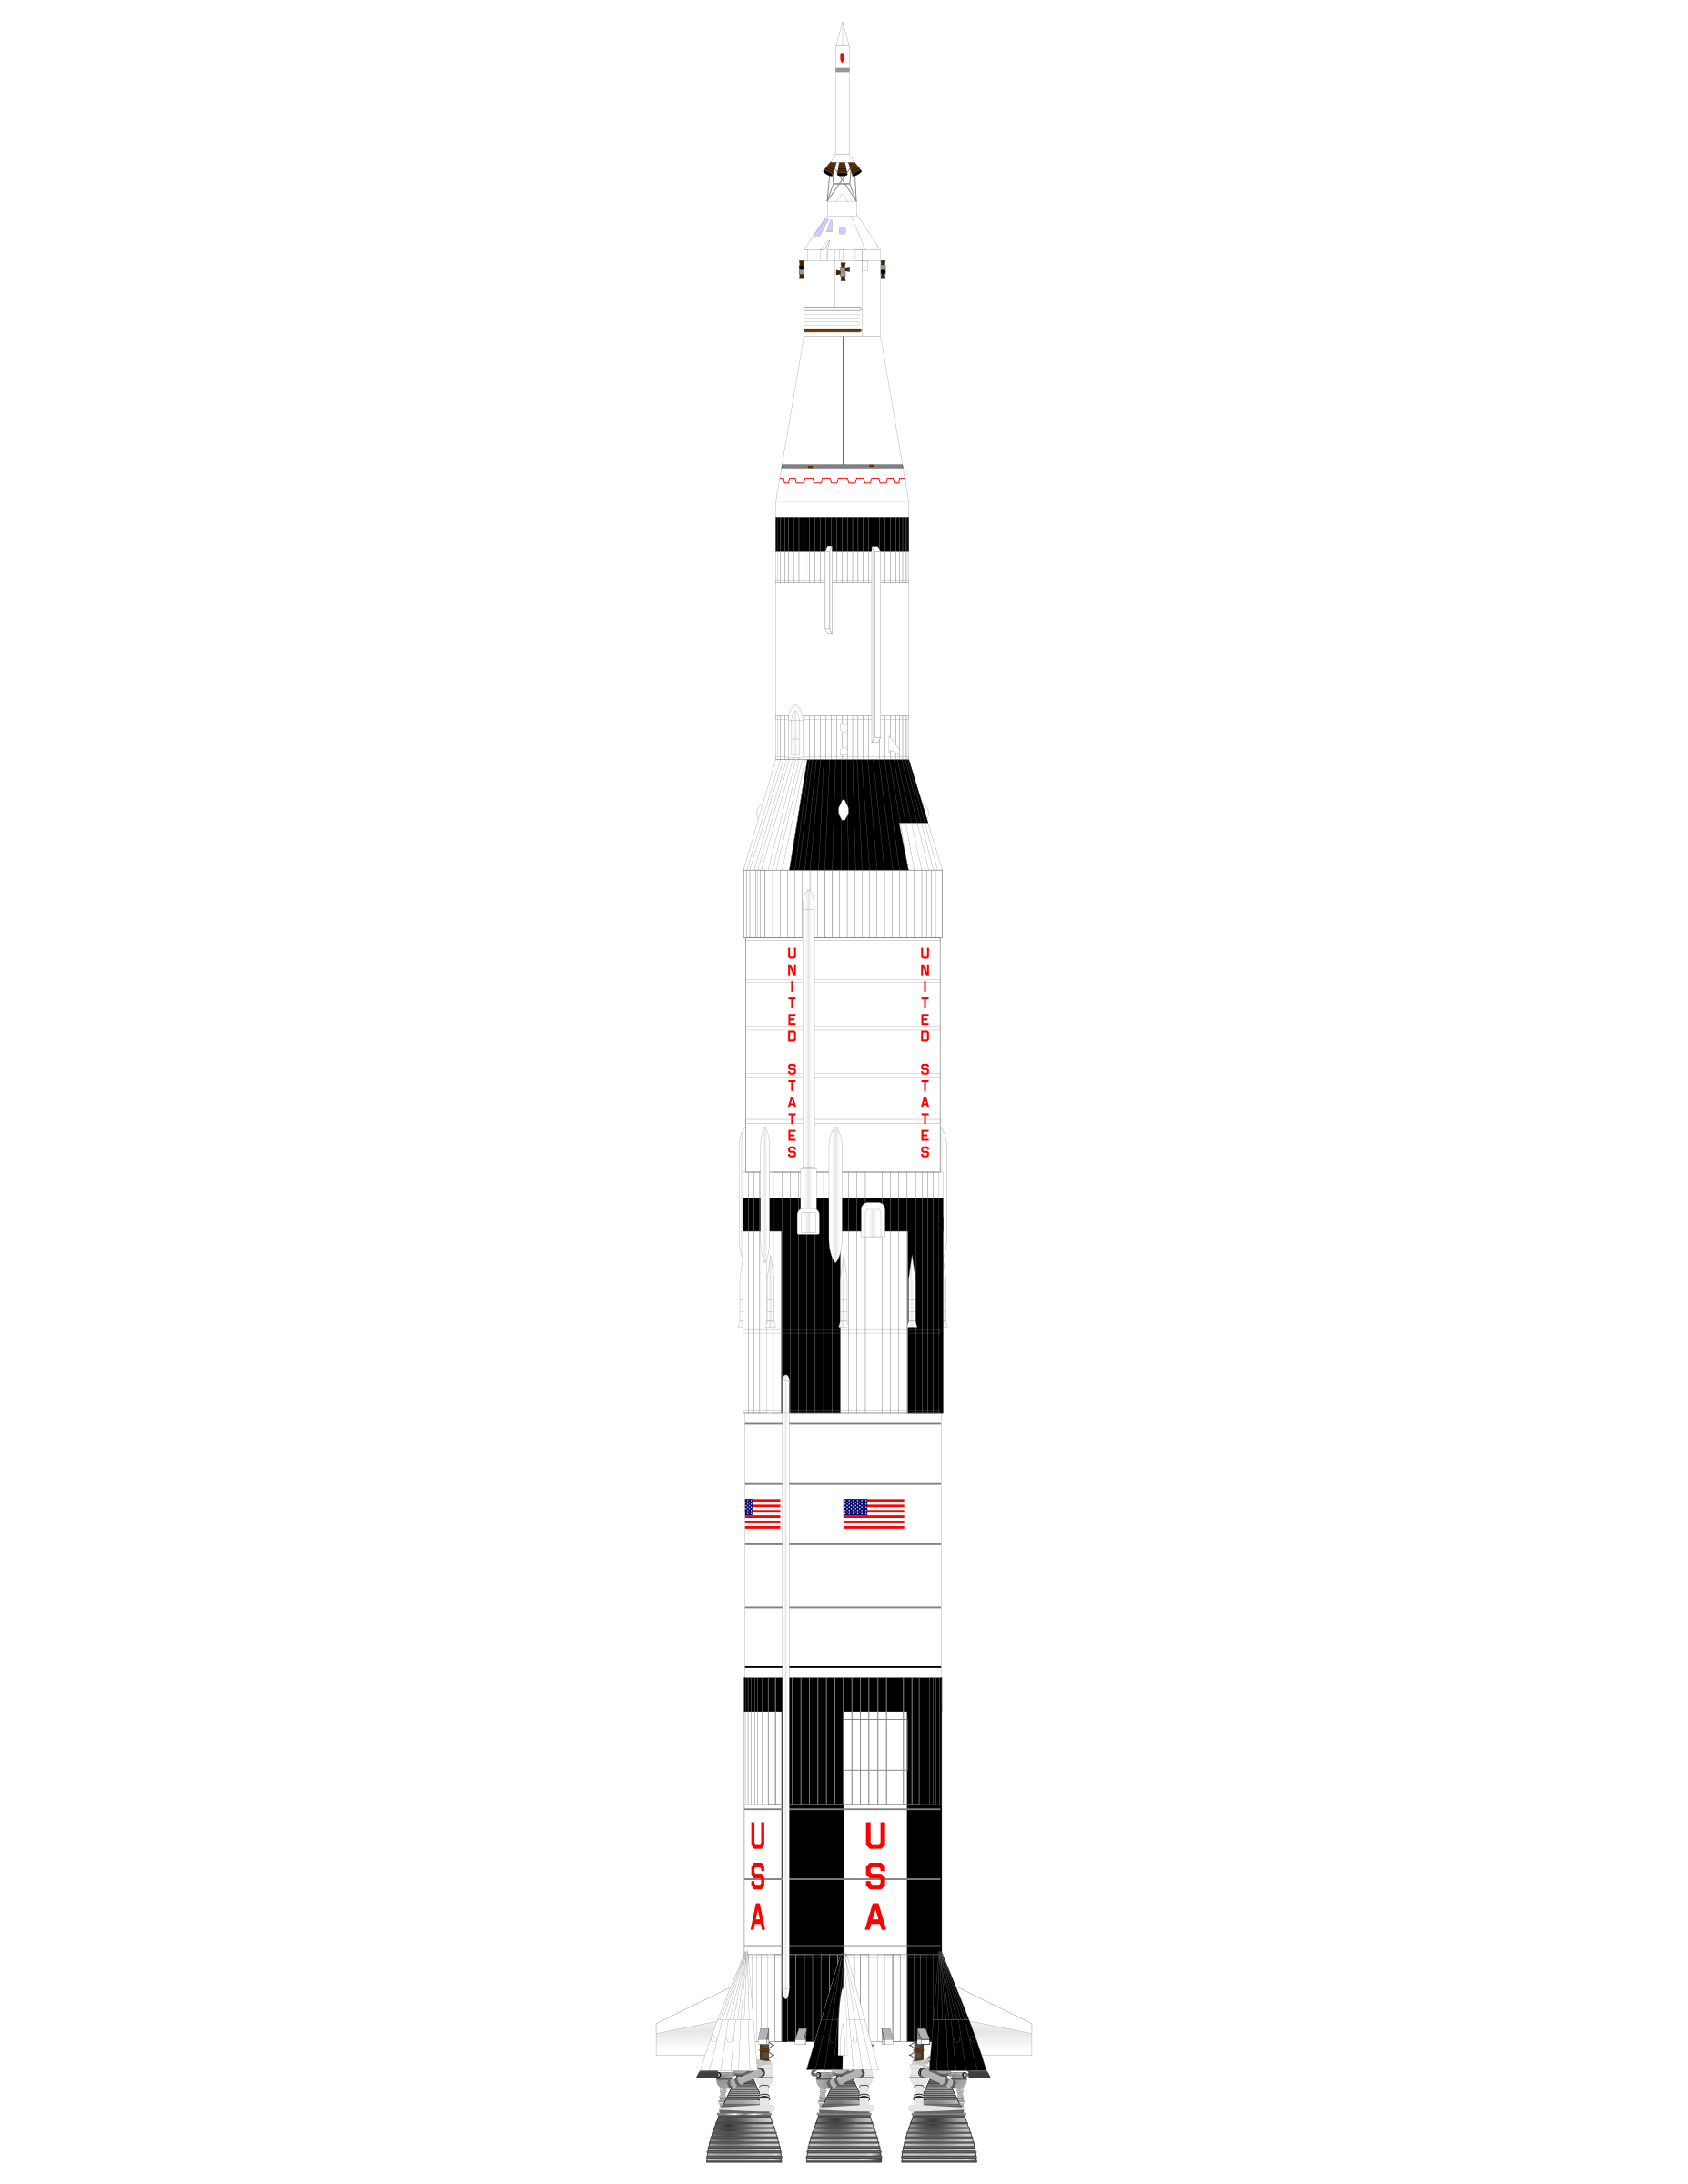 Saturn clipart realistic. Rocket v by charner